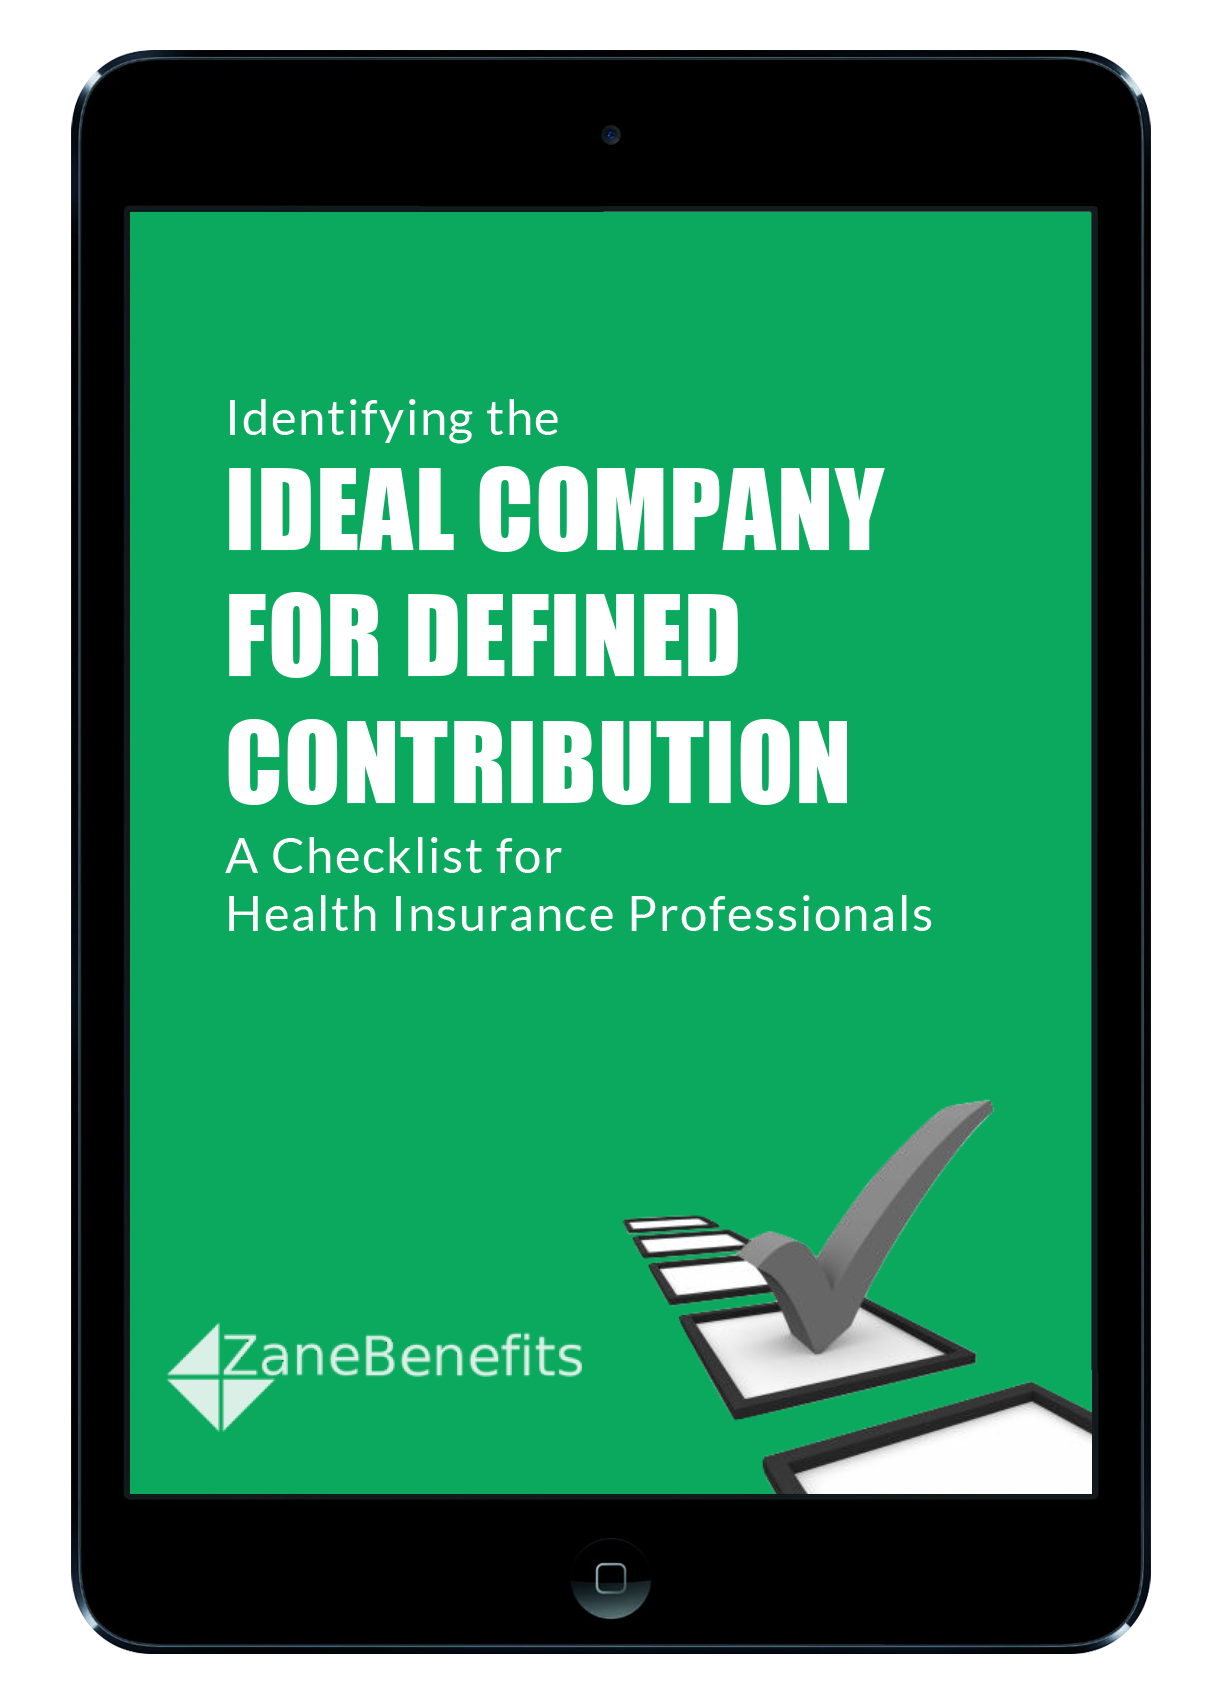 Identifying the Ideal Company for Defined Contribution